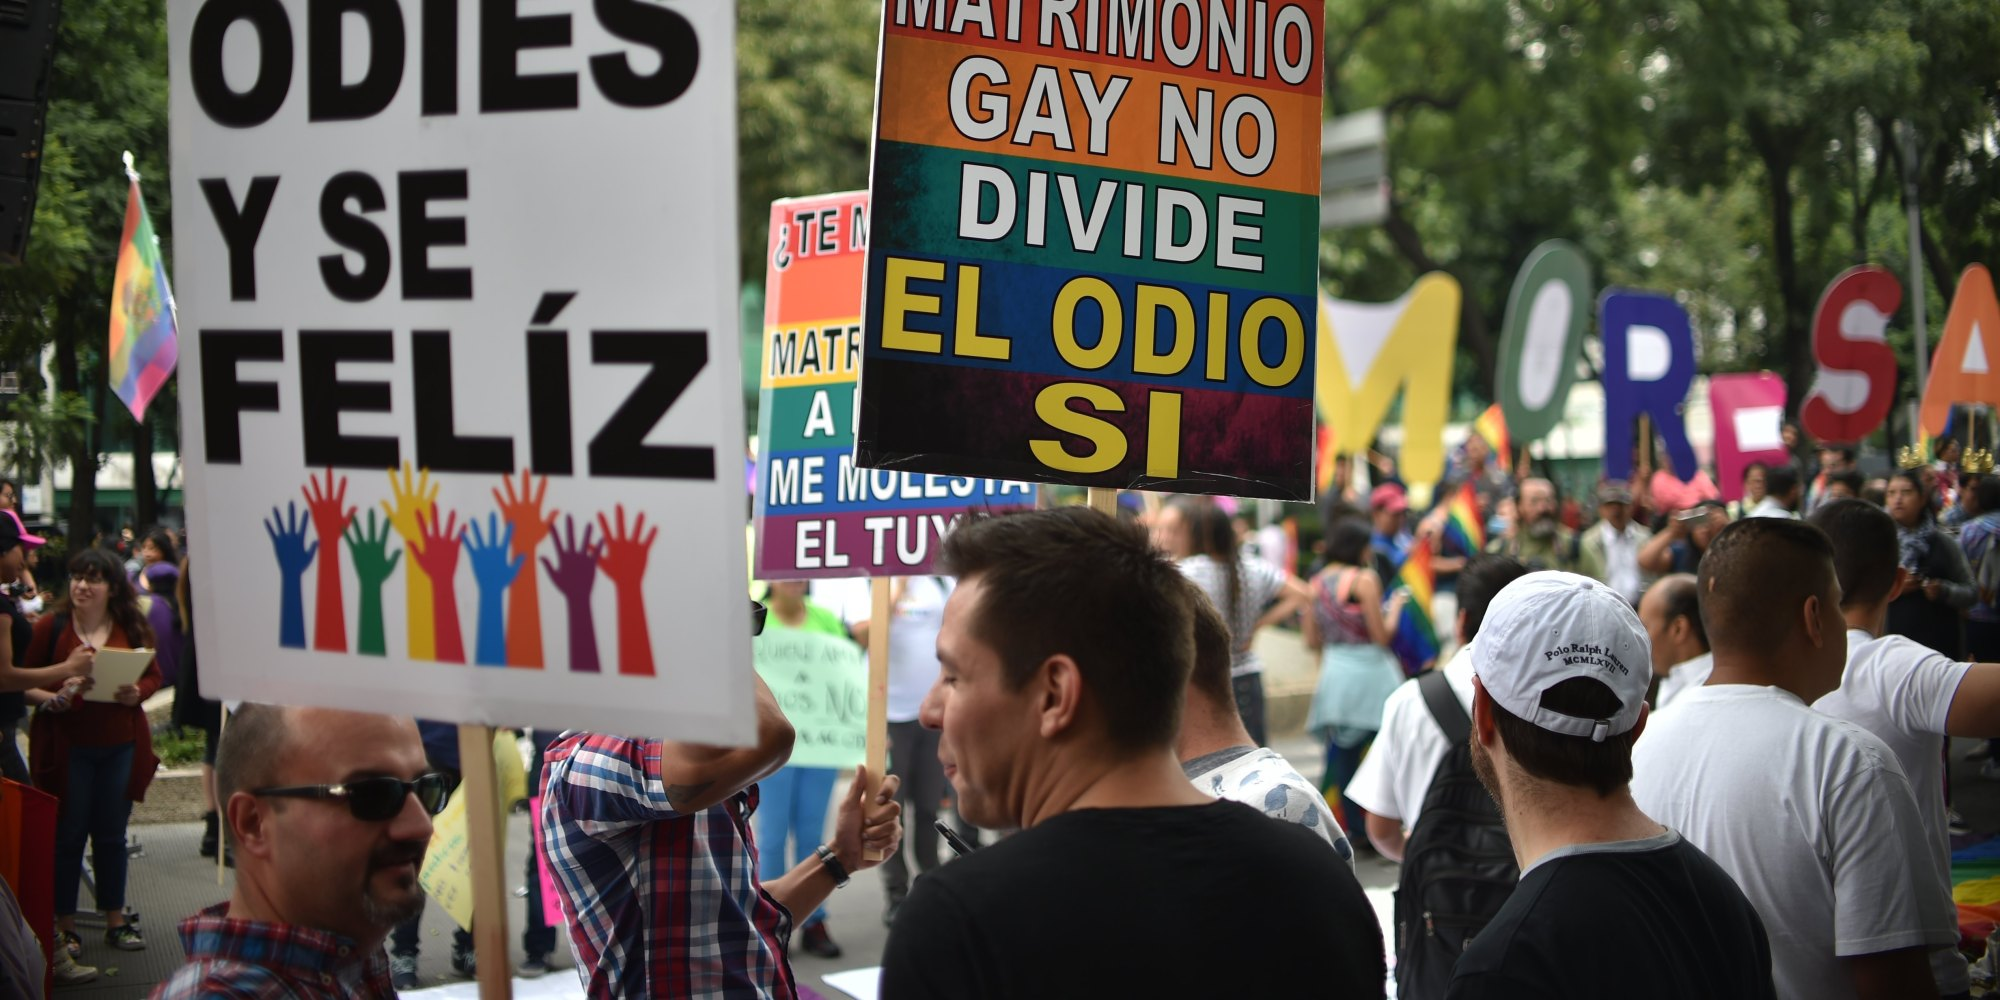 marriage in mexico Mexico city - tens of thousands of people marched through mexico city on saturday in opposition to president enrique pena nieto's push to legalize same-sex marriage.